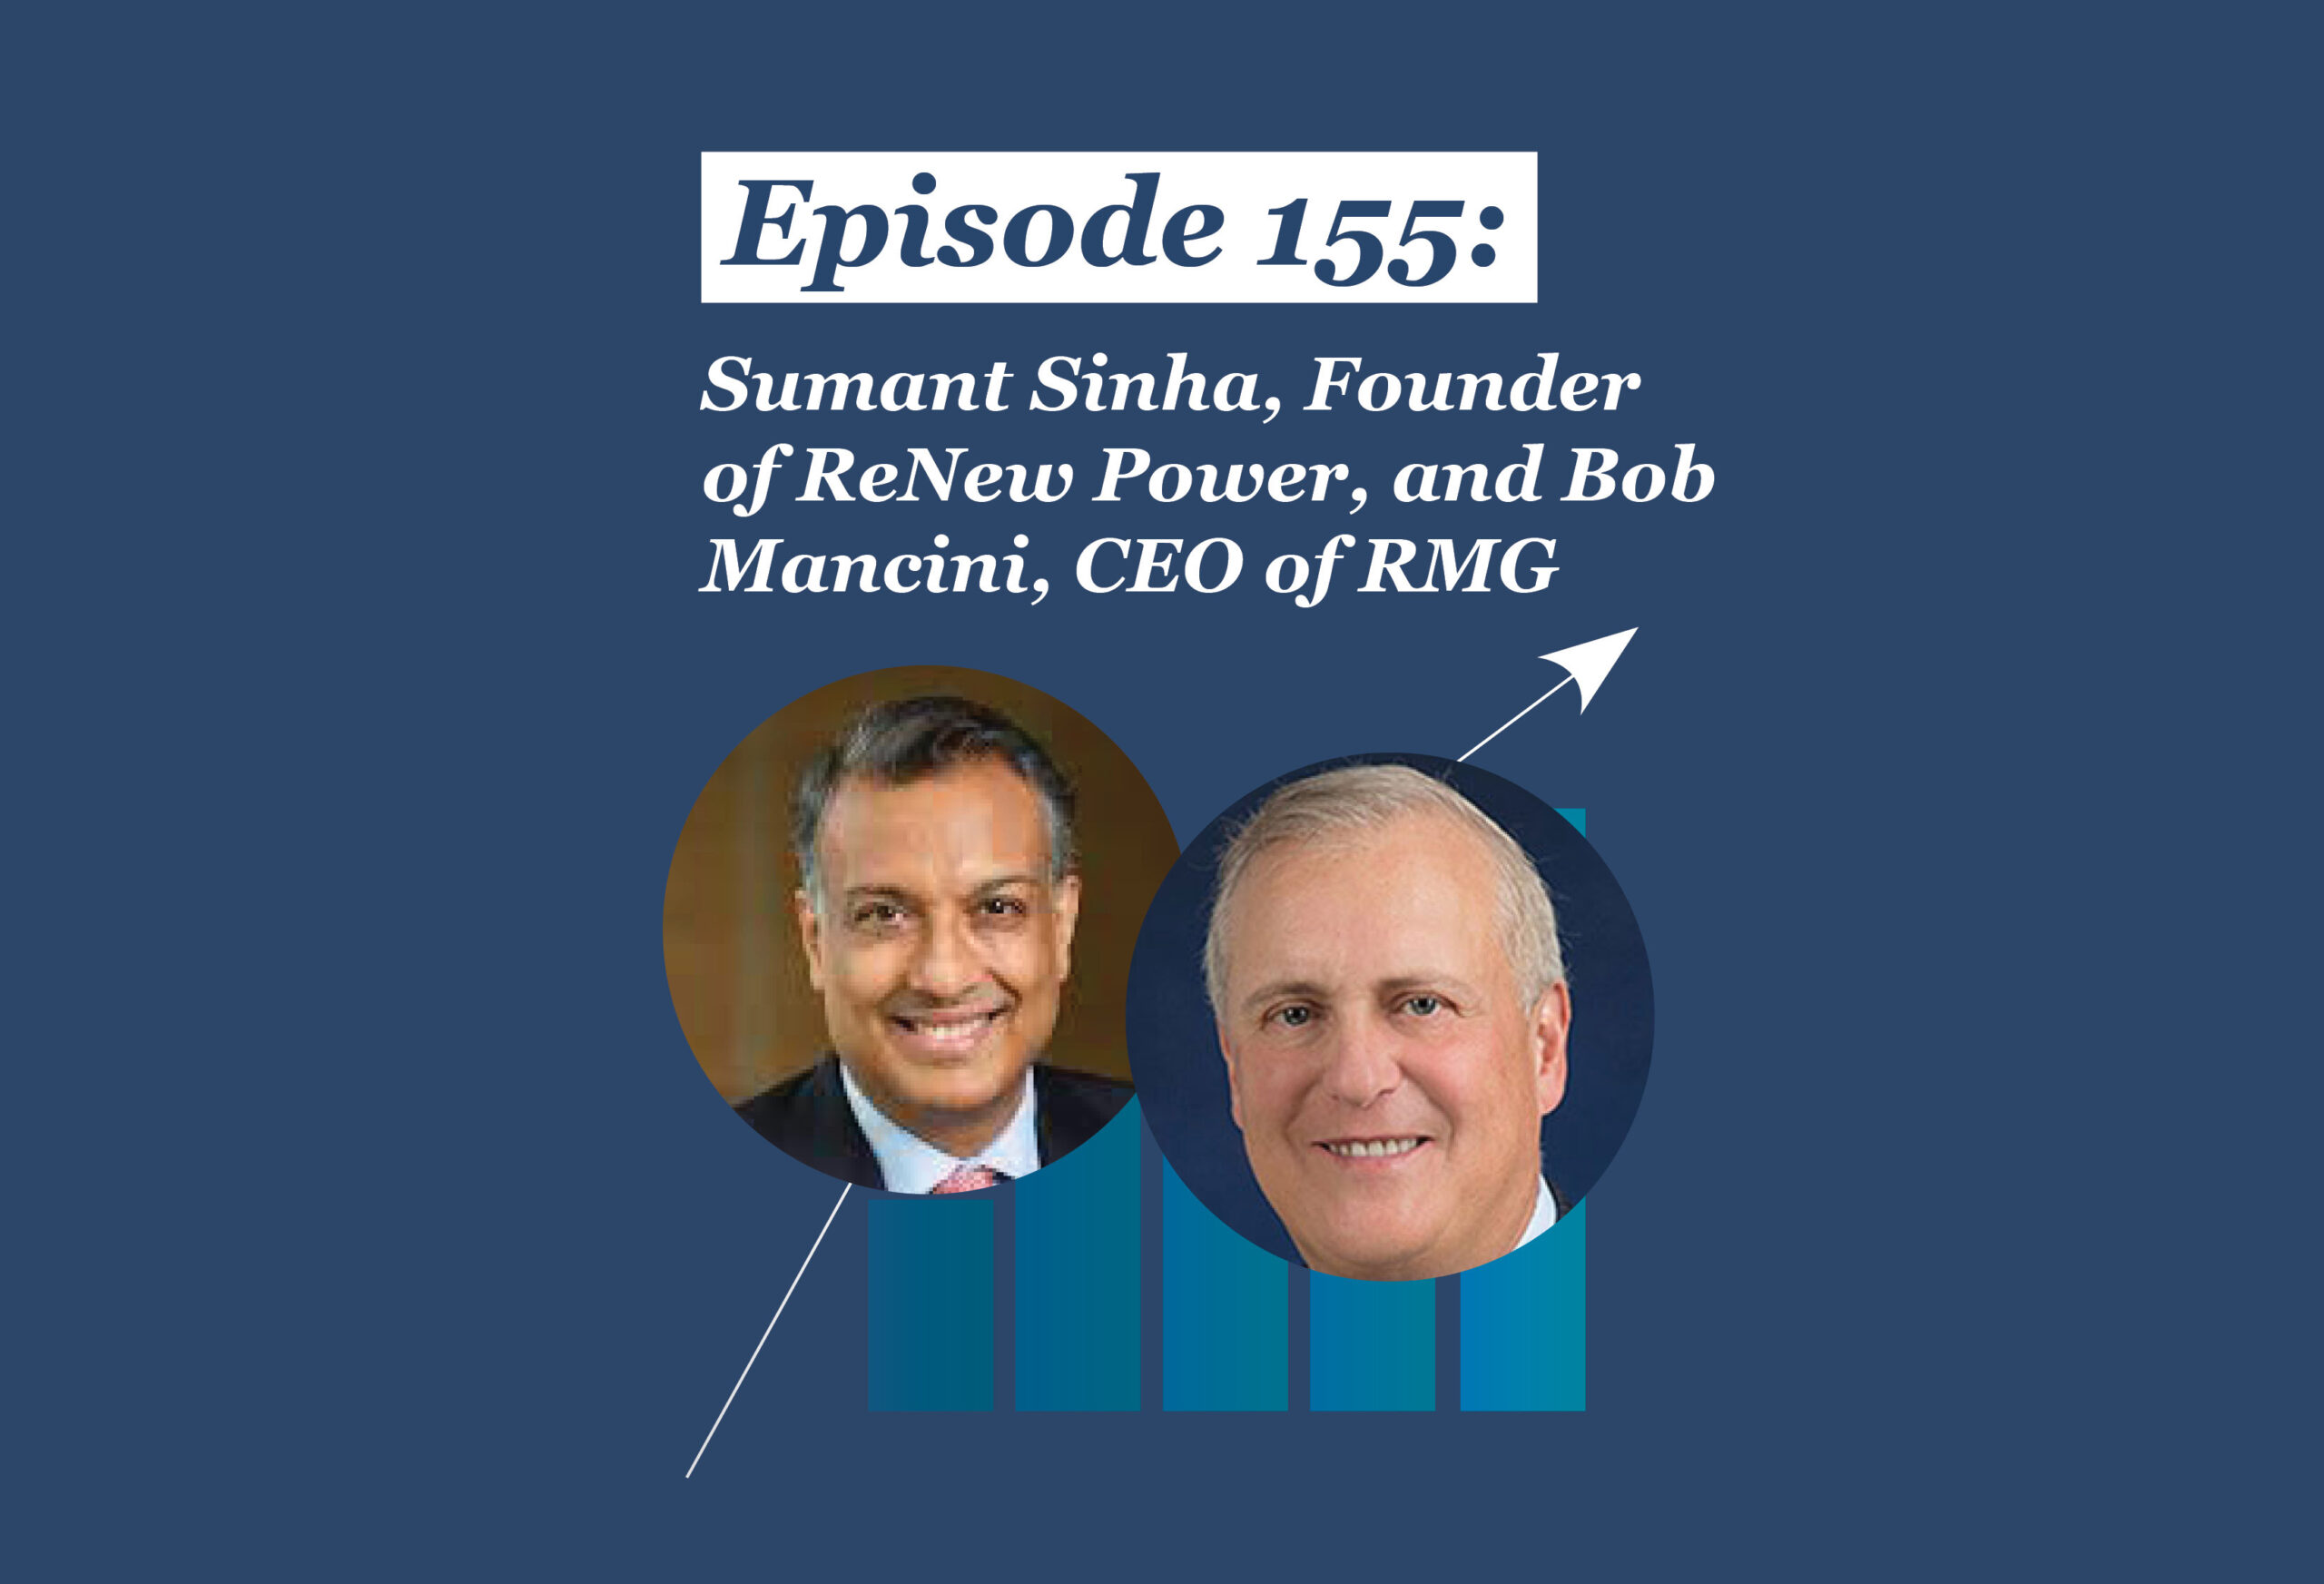 Absolute Return Podcast #155: Leadership Chat: Sumant Sinha (Founder of ReNew Power) and Bob Mancini (CEO of RMG)